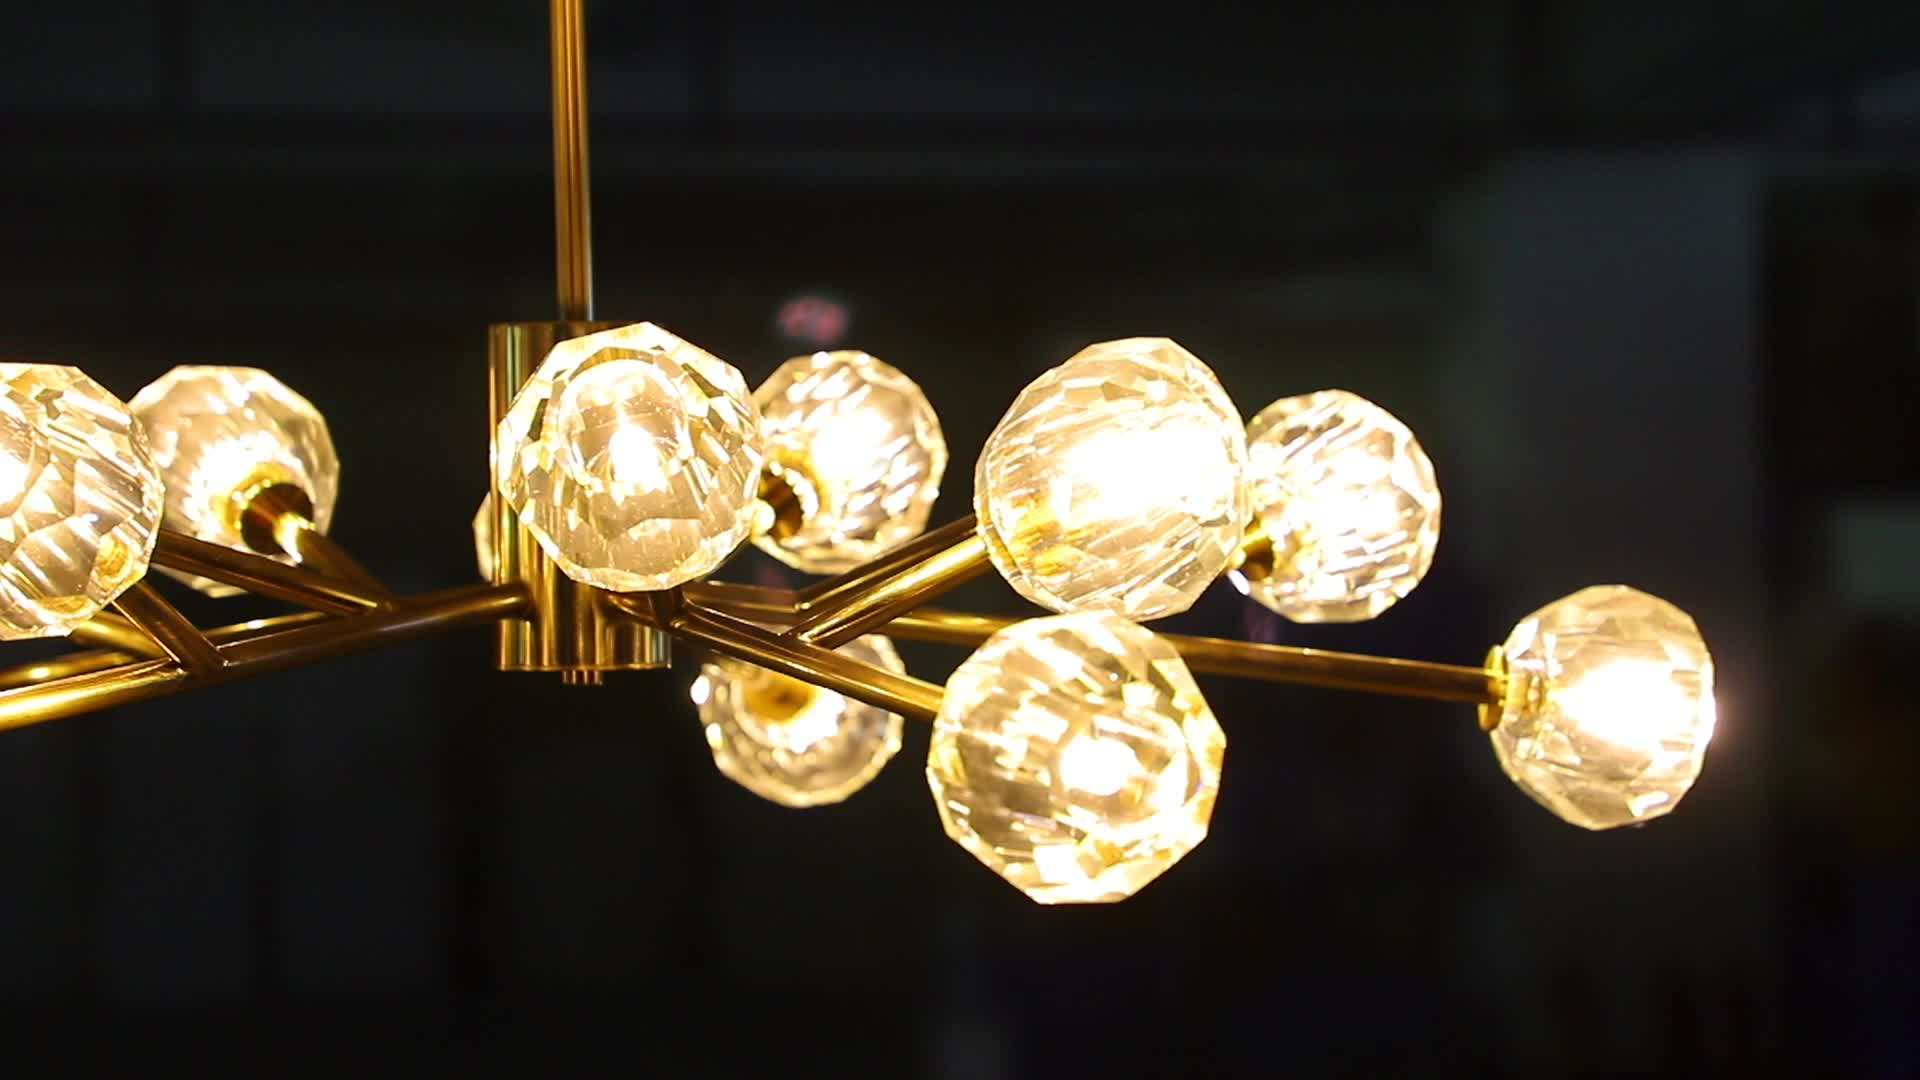 Contemporary dining room brass luxury copper light gold glass crystal pendant chandelier